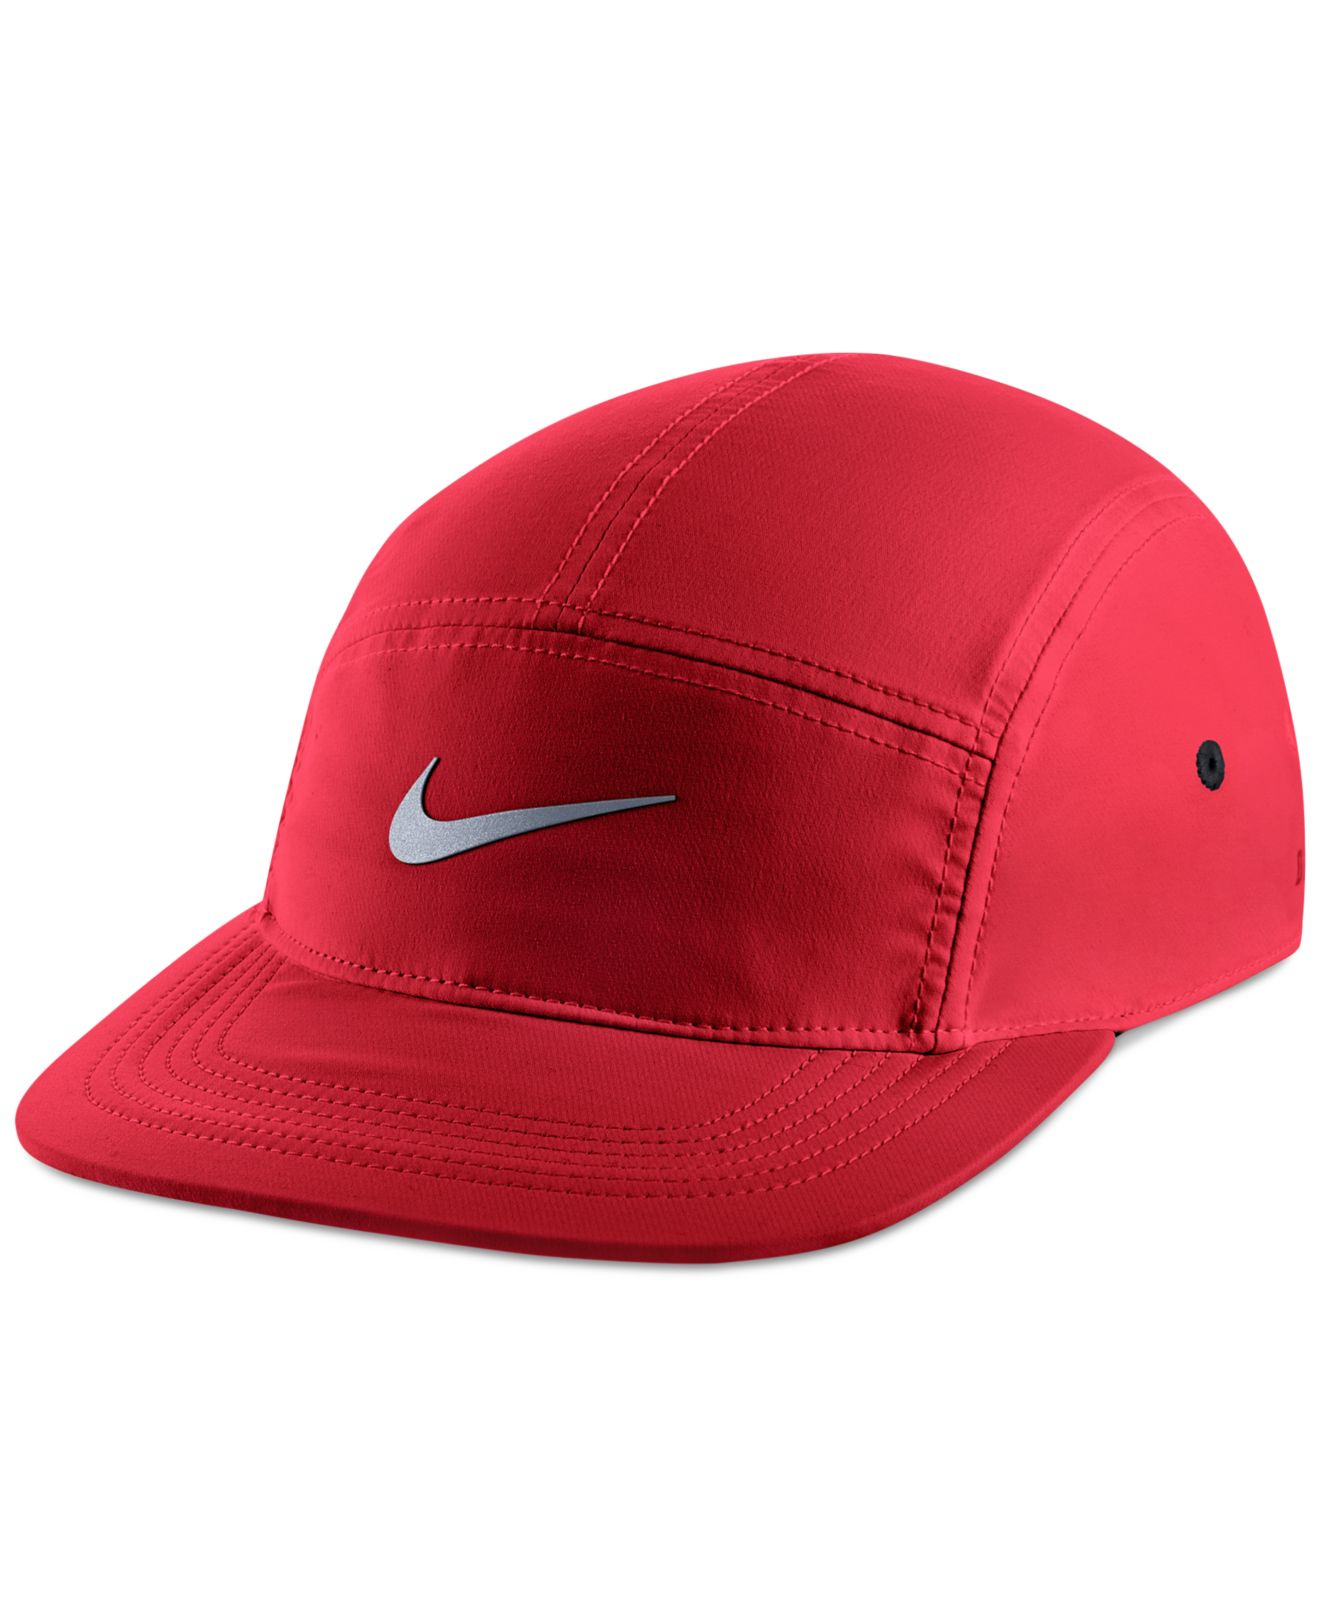 4c7d604119be5f Nike Run Aw84 Hat in Red for Men - Lyst